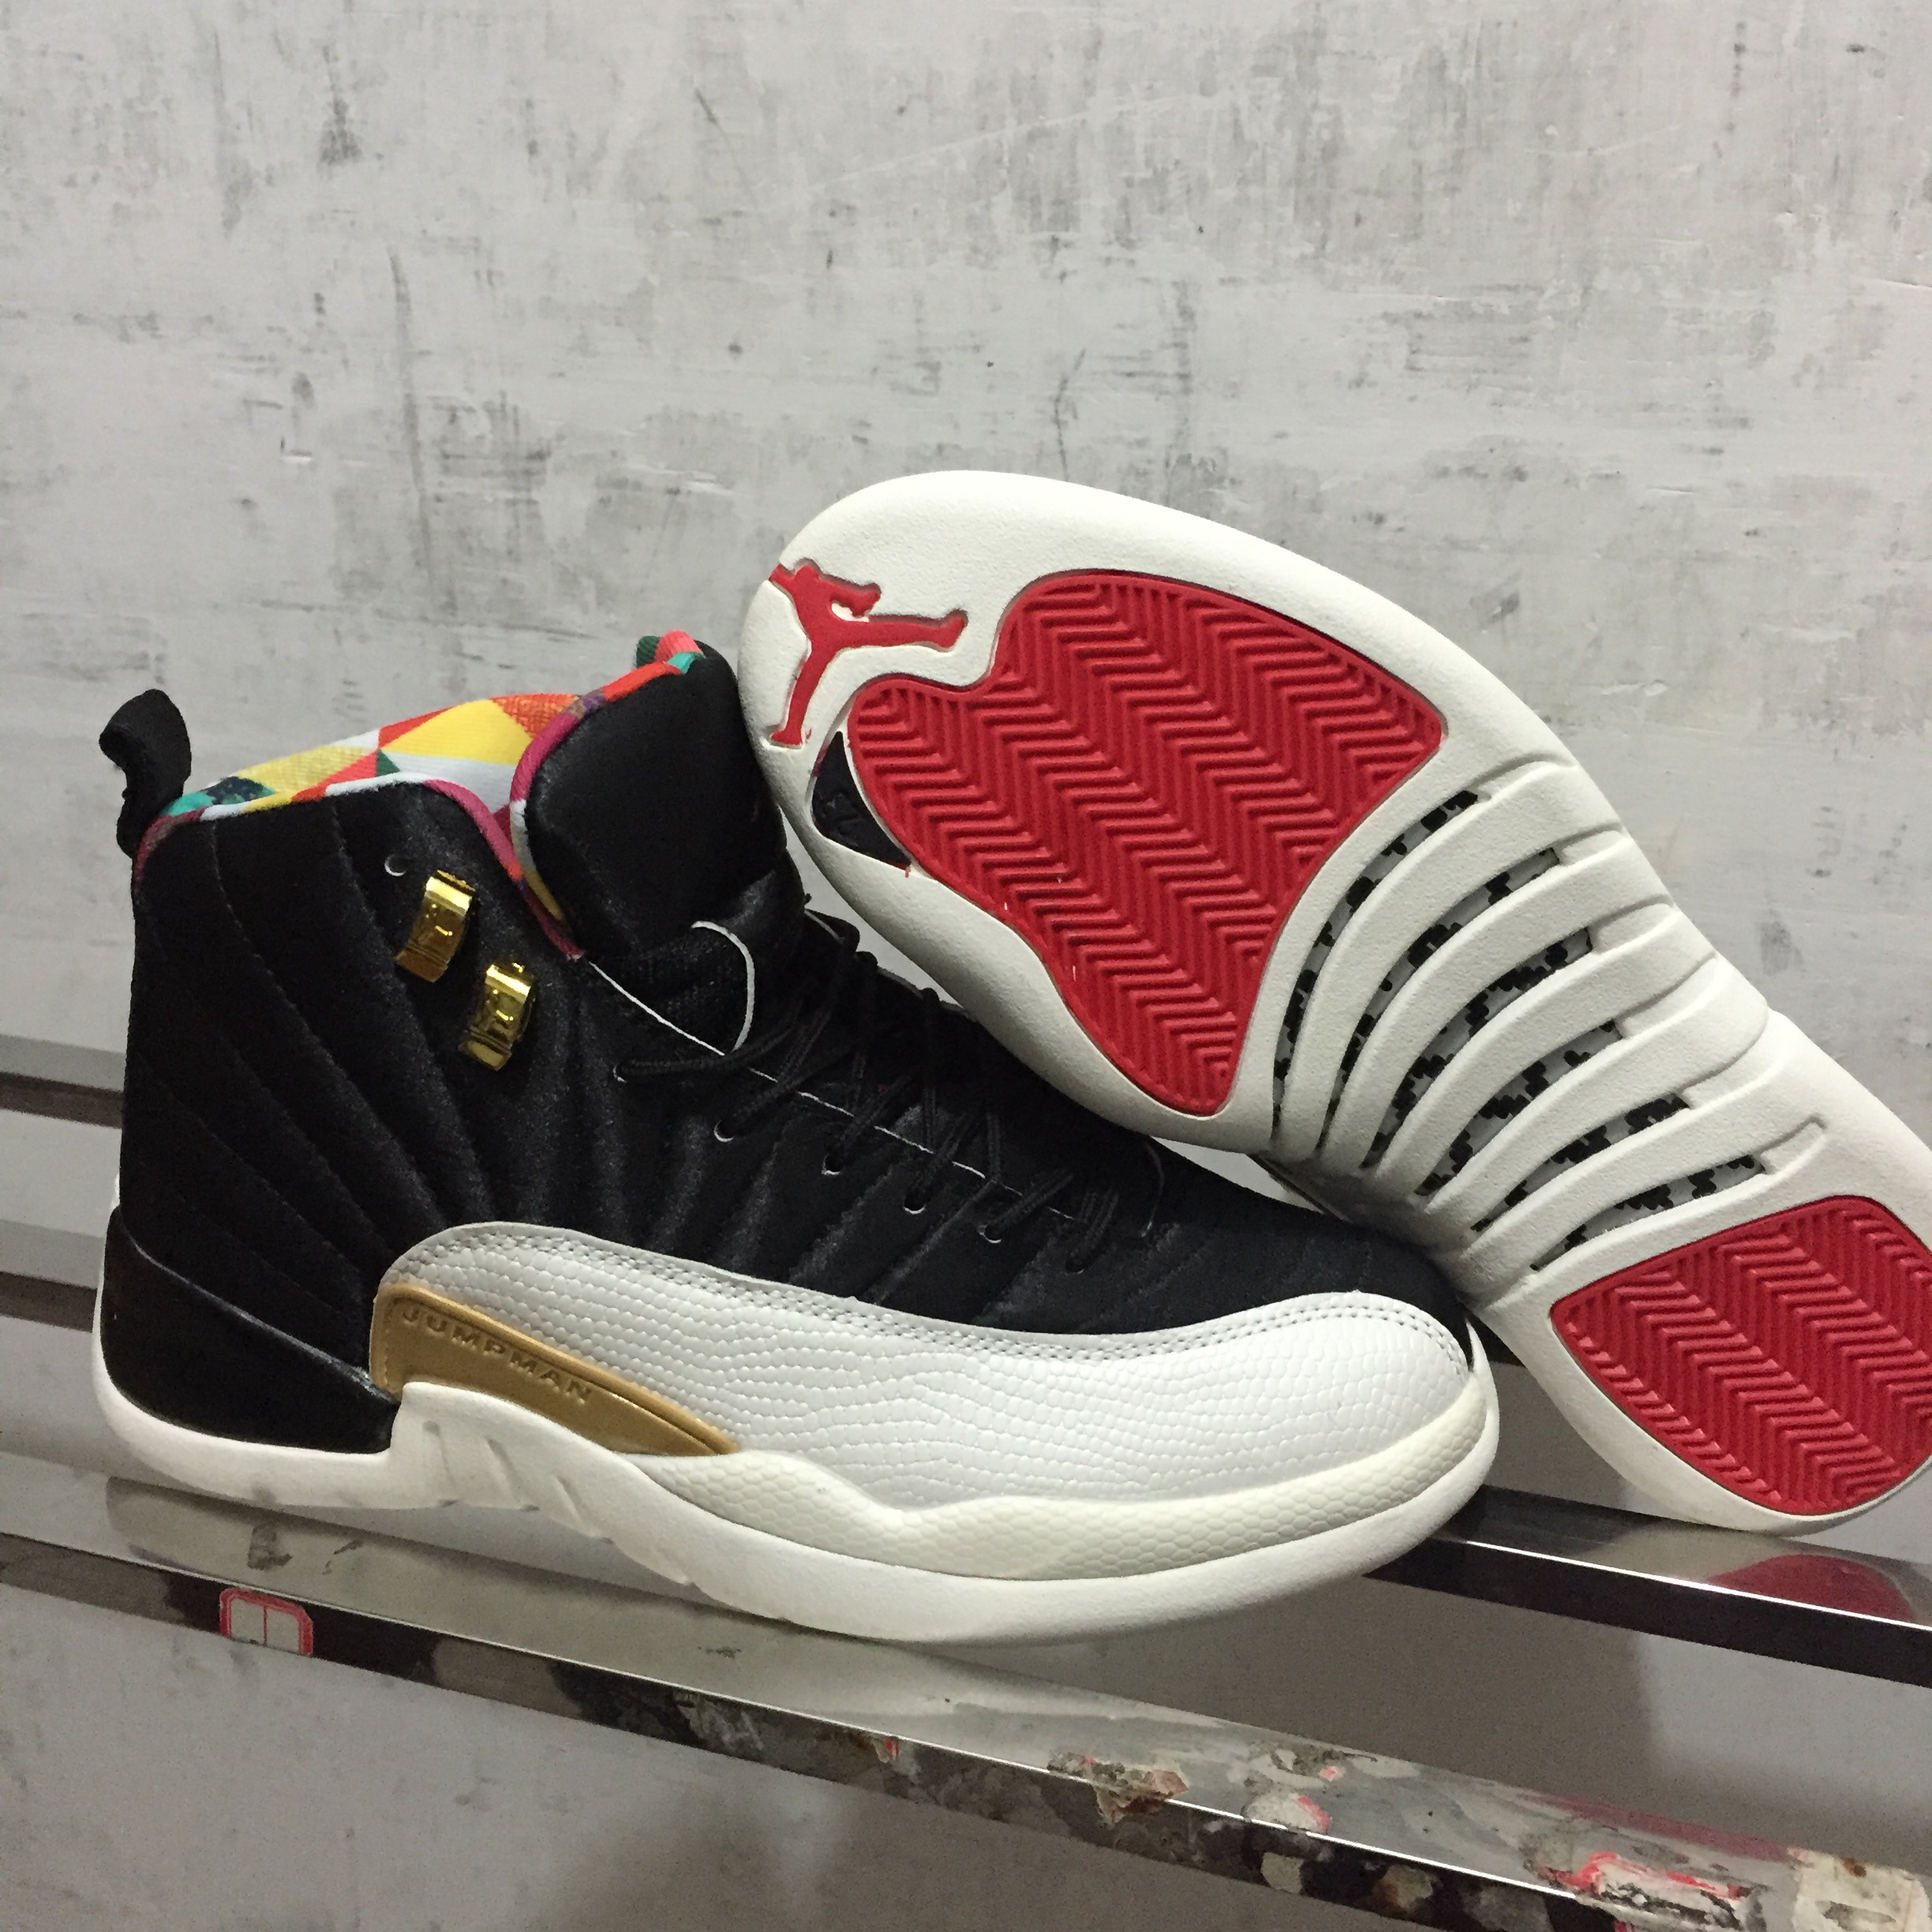 new style f07c6 a7280 Air Jordan 12 CNY Chinese New Years Jordans 2019 Mens Retro Jordans 12s  Shoes XY1 - Getfashionsstore.